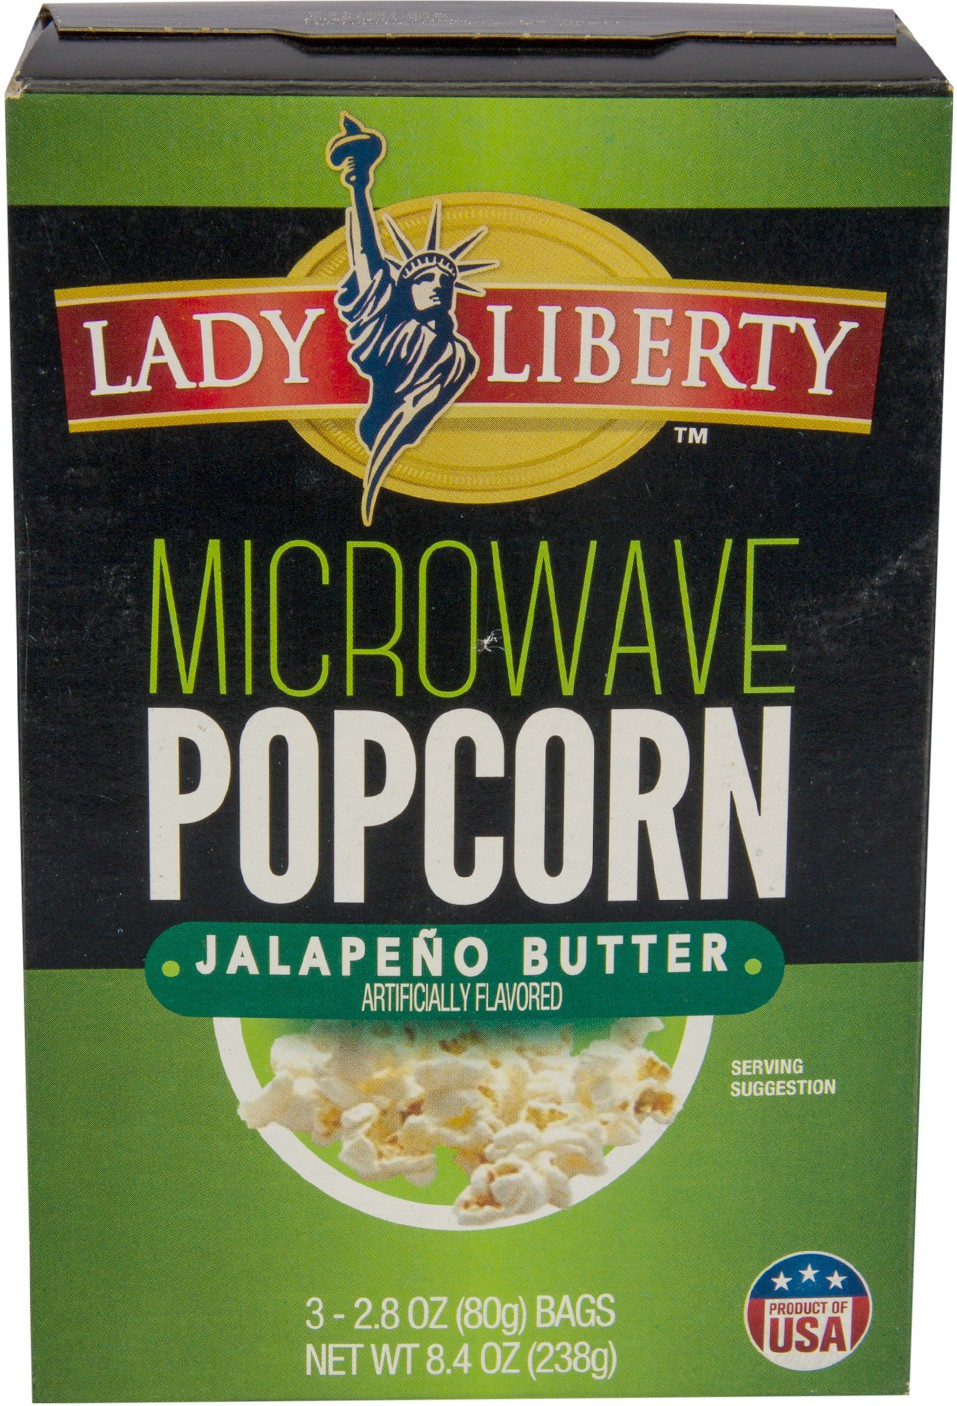 Lady Liberty Microwave Popcorn